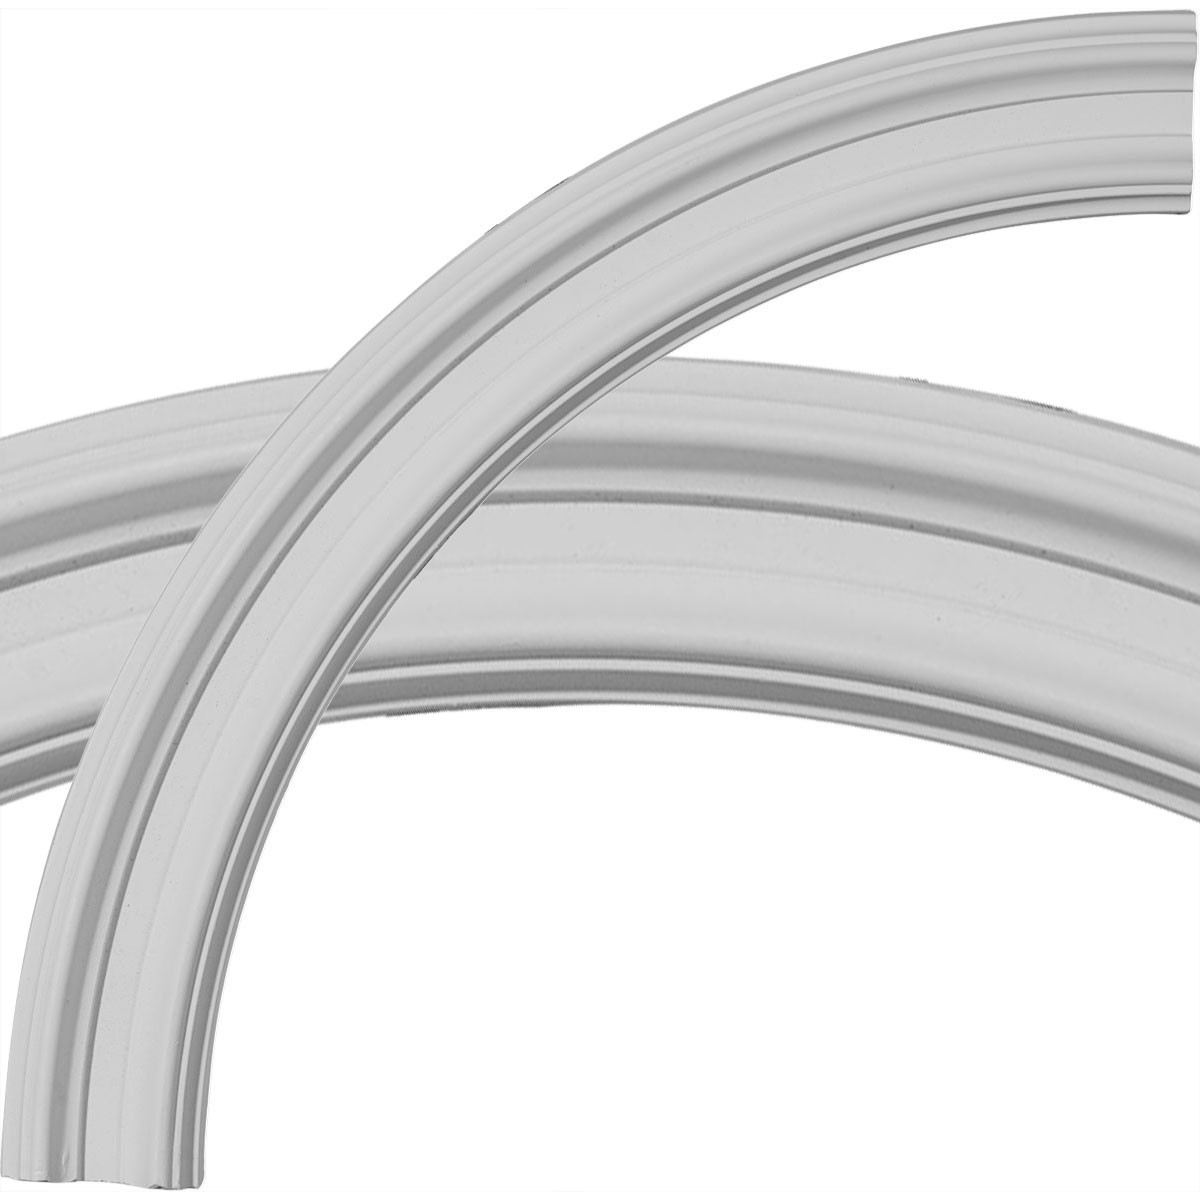 """EM-CR23CL - 24""""OD x 20""""ID x 2""""W x 7/8""""P Claremont Ceiling Ring (1/4 of complete circle)"""